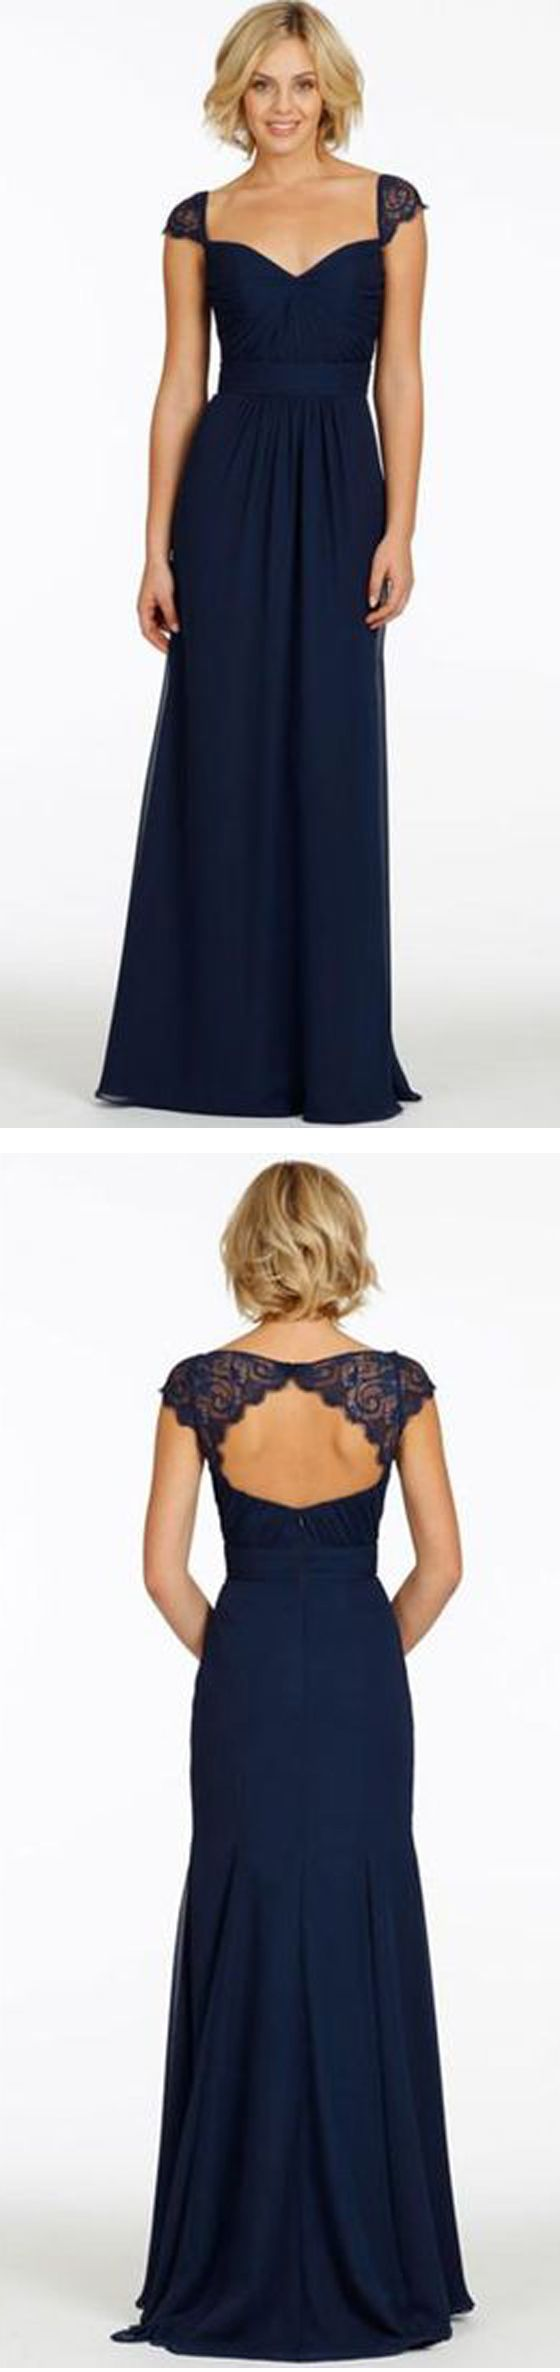 Best 20 navy bridesmaid dresses ideas on pinterestno signup long bridesmaid dresses navy bridesmaid dresses cap sleeve bridesmaid dress ombrellifo Image collections